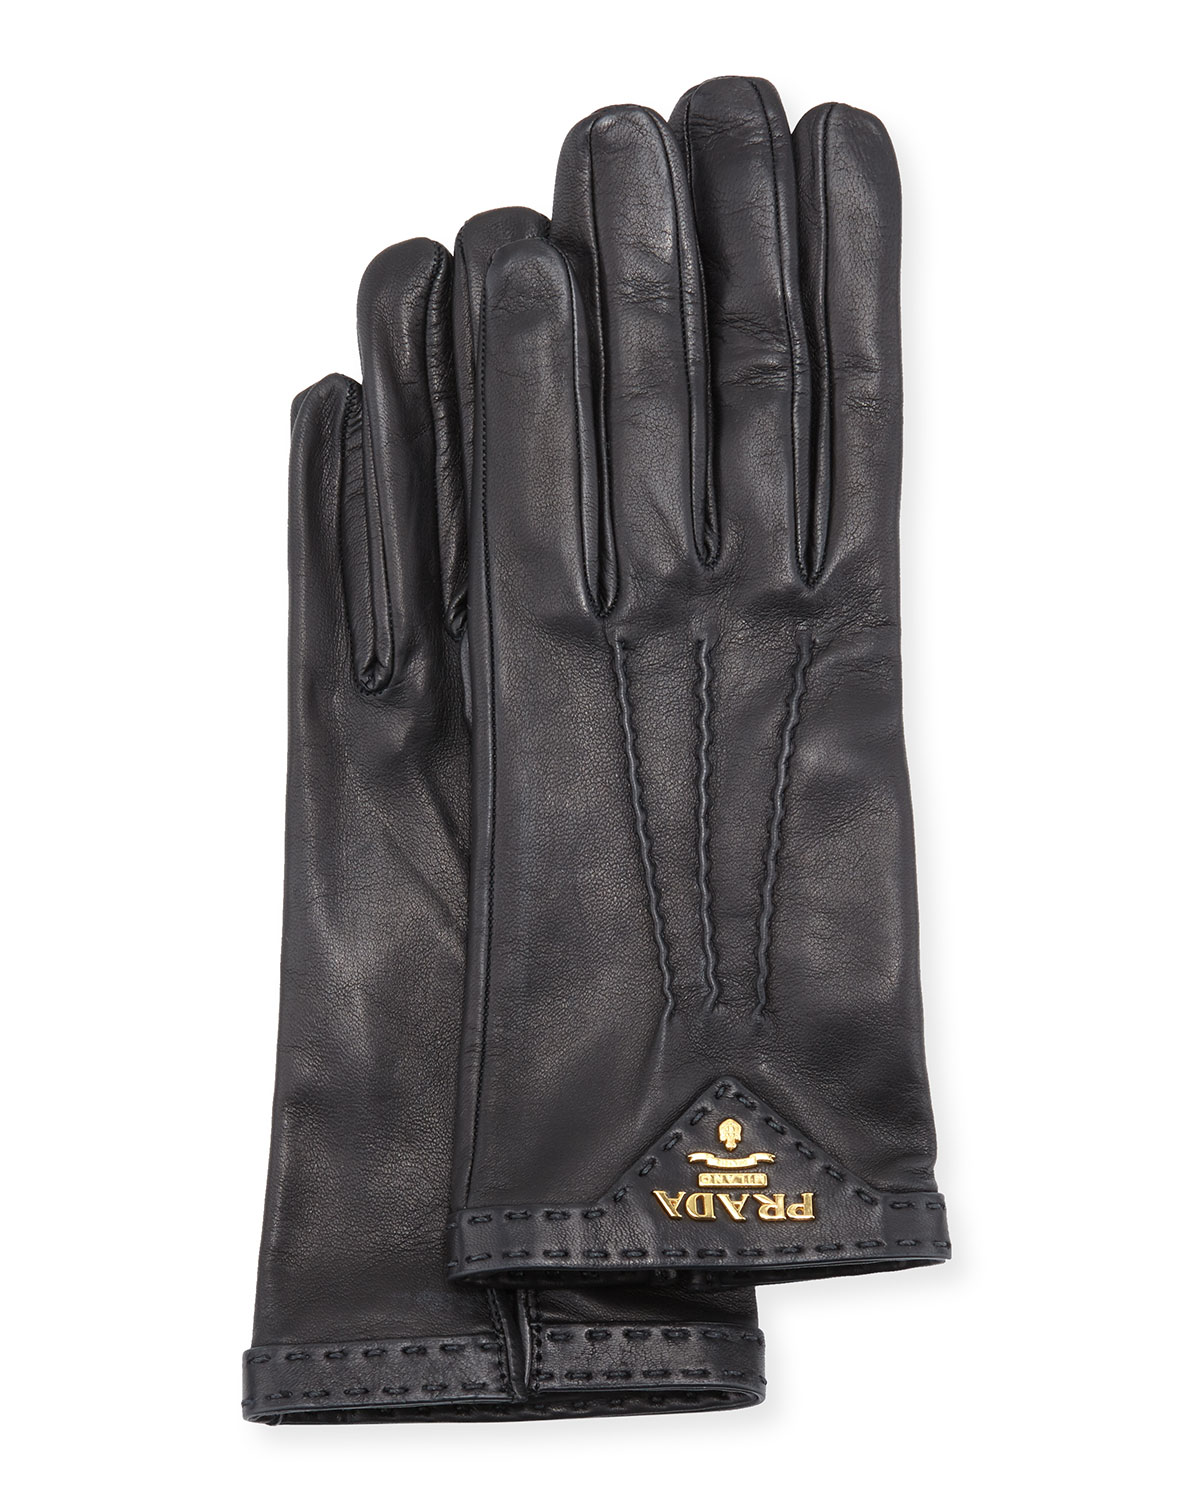 Napa Leather Gloves, Camel